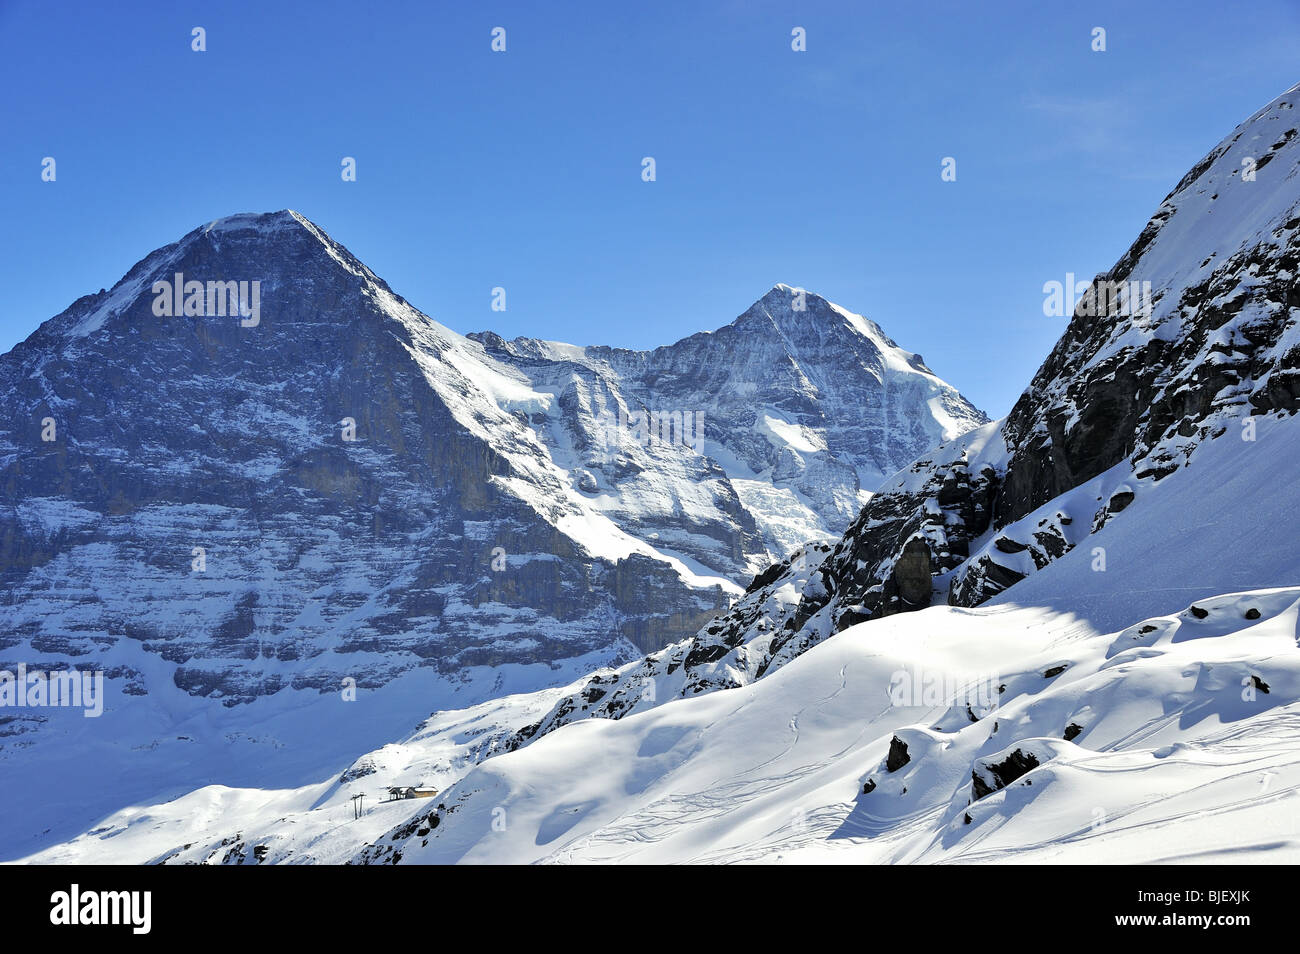 Mount Eiger north face Switzerland,and off piste ski tracks - Stock Image